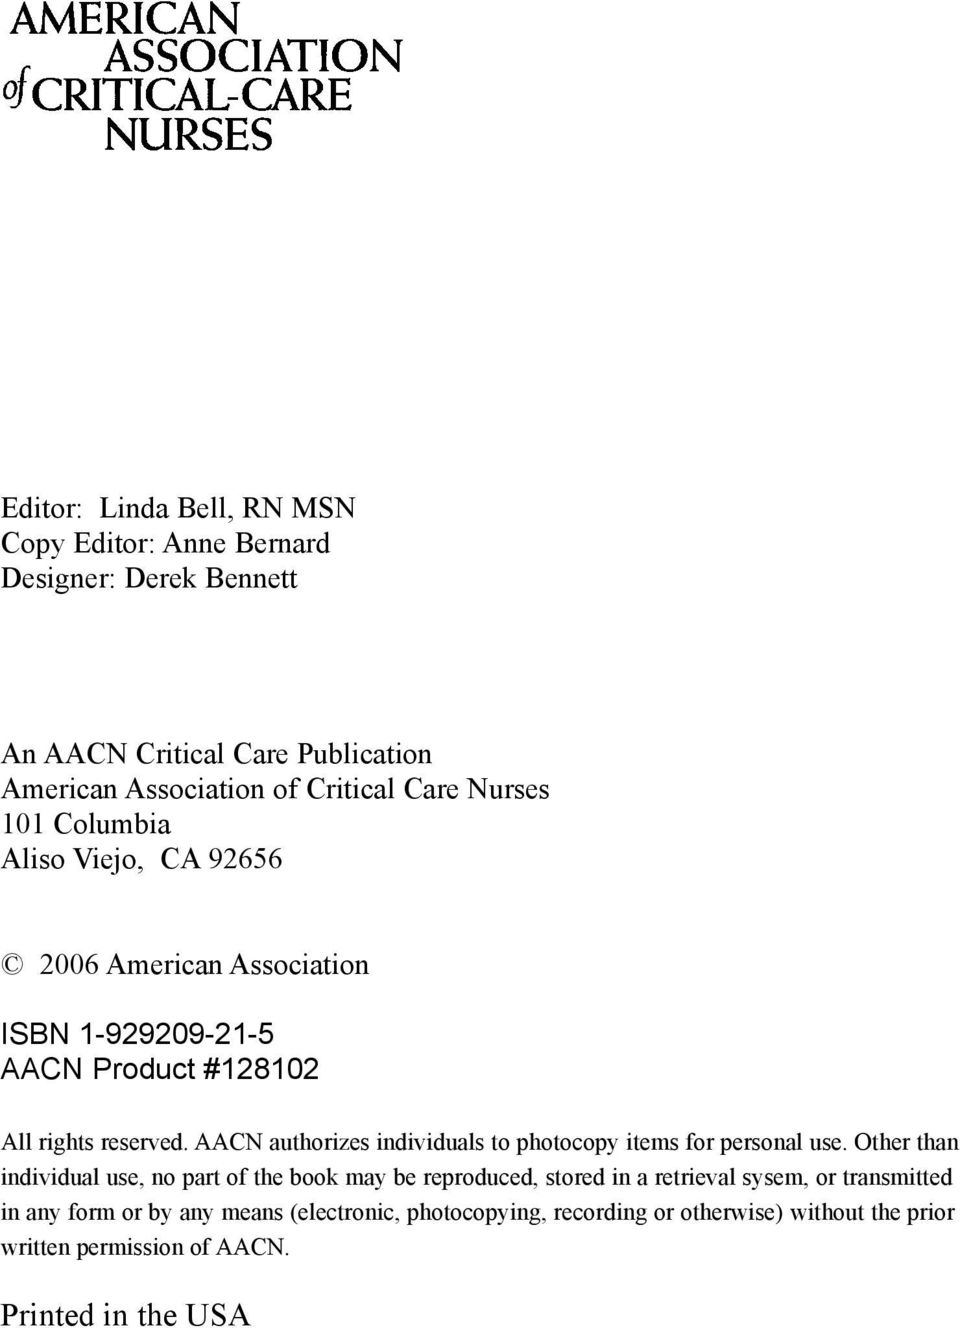 AACN authorizes individuals to photocopy items for personal use.